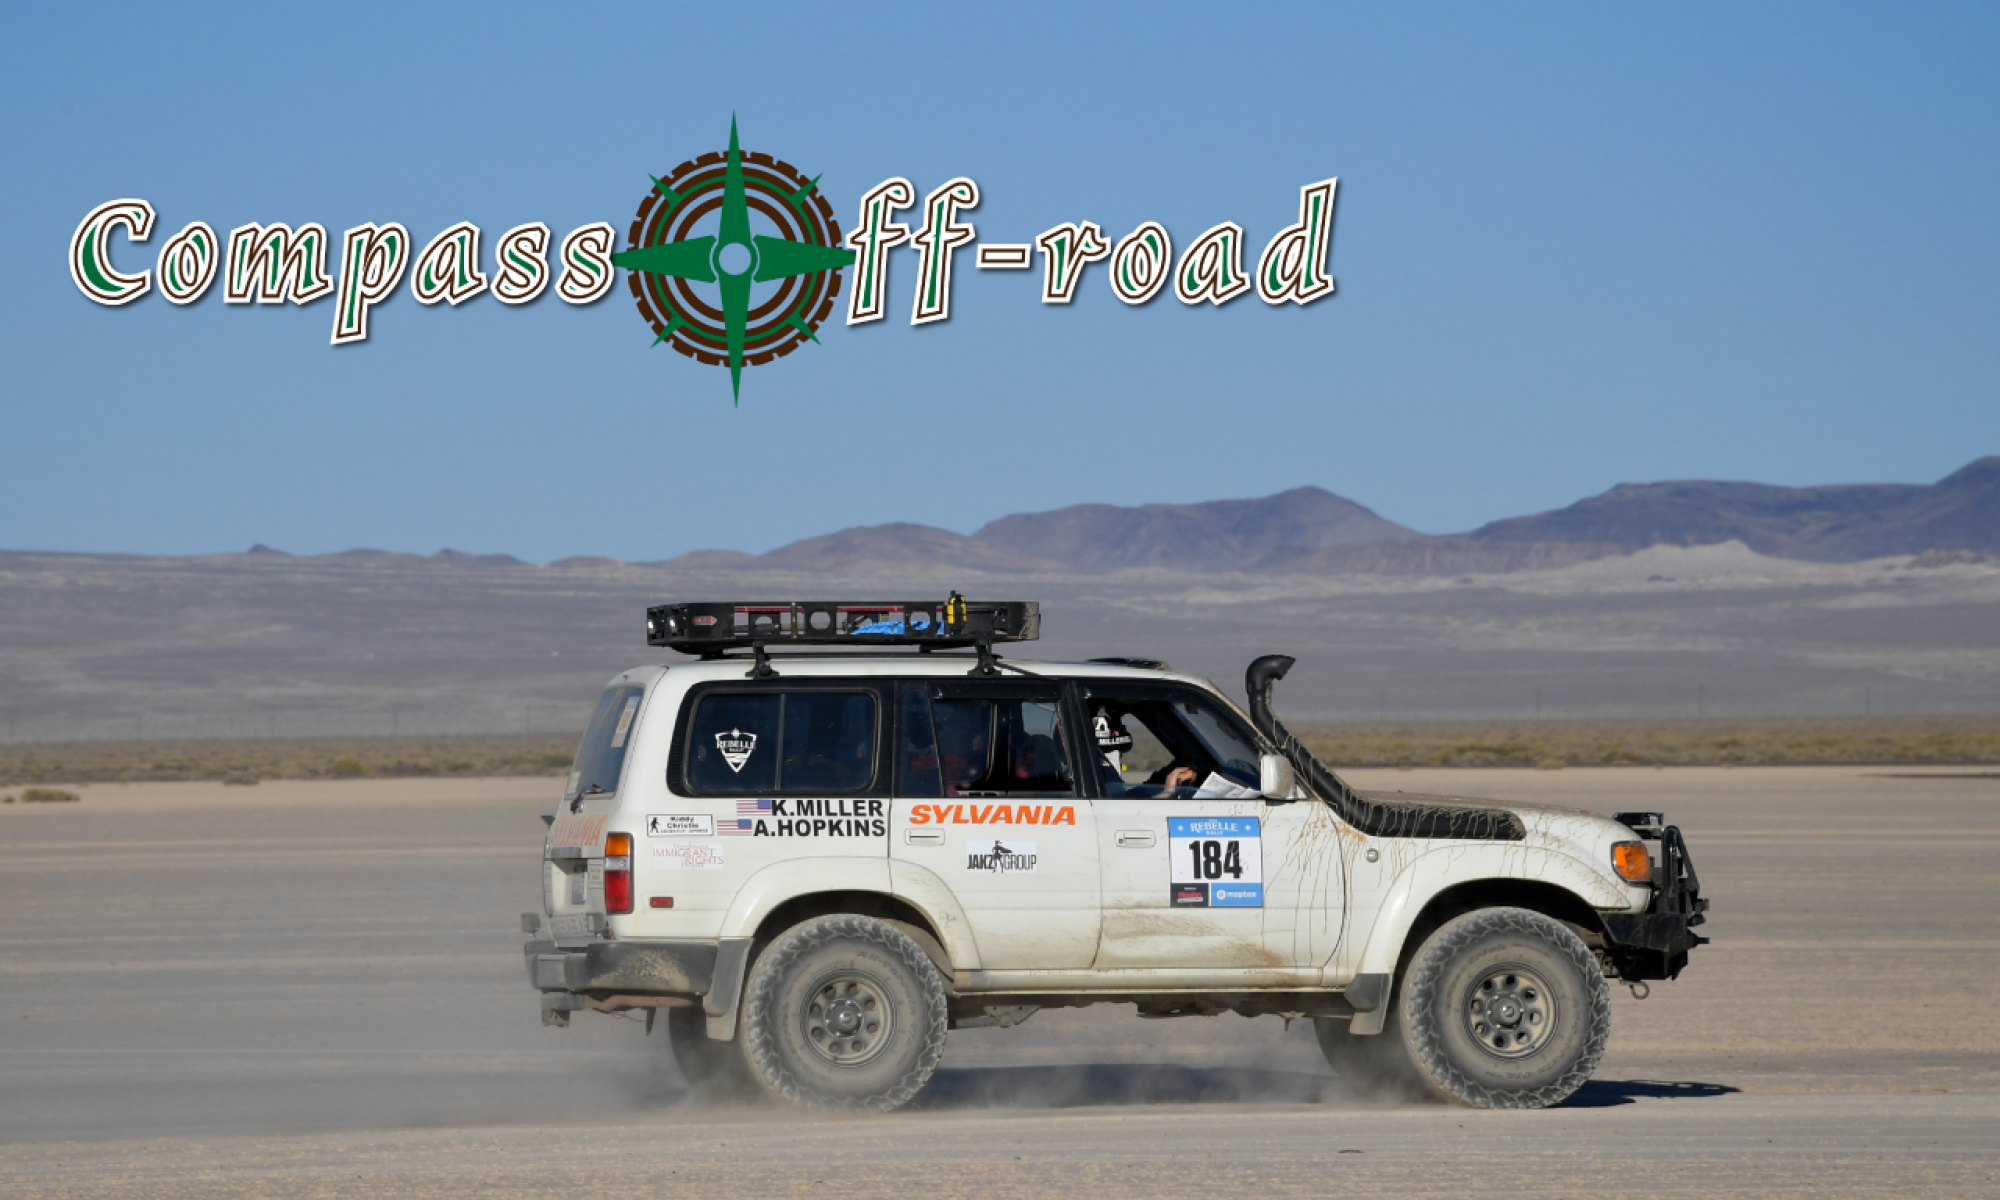 Compass Off-Road